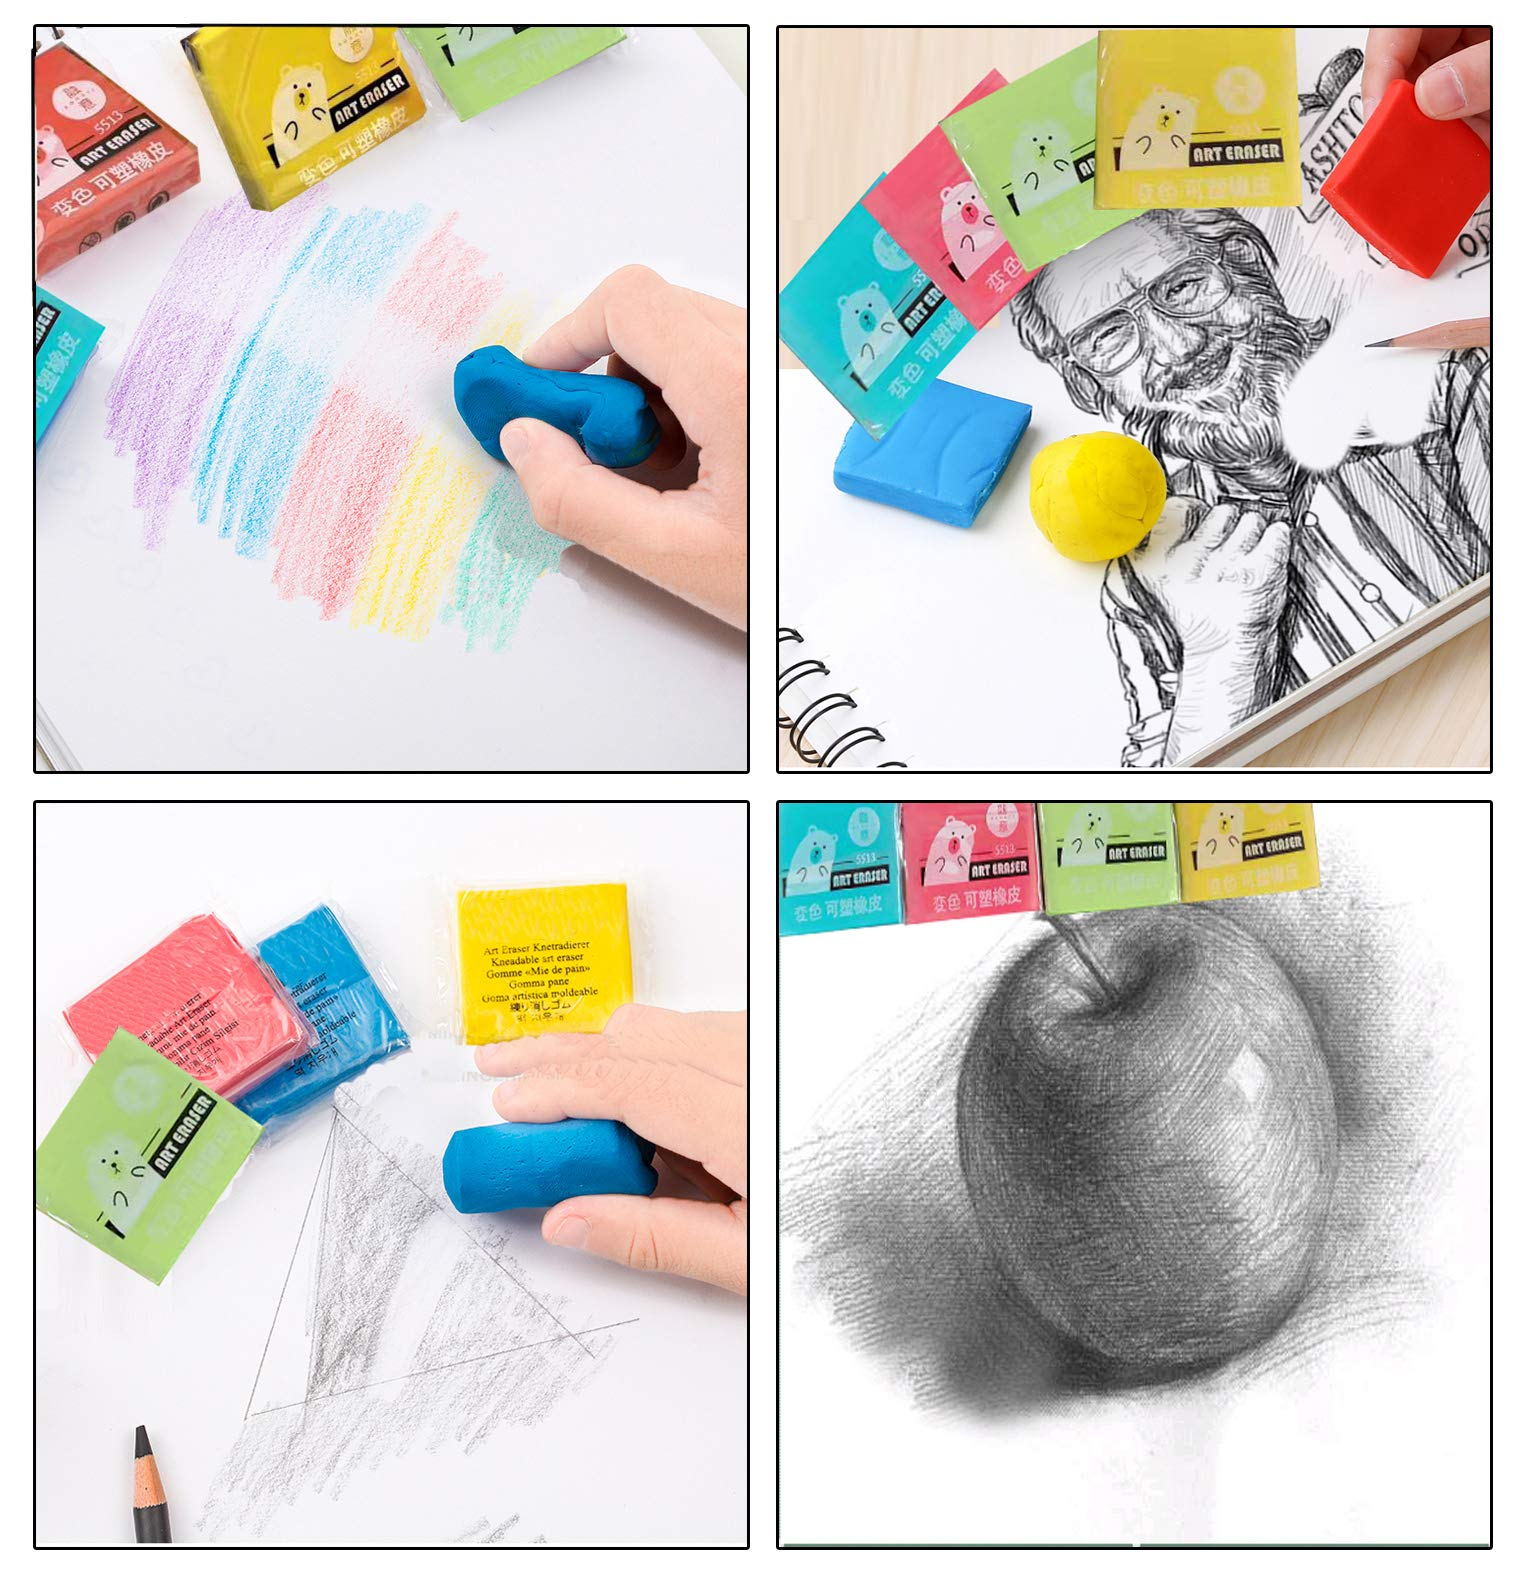 Erasers,Kneaded Rubber Eraser,Reusable and Non-Drying,12 Pack Large Size,Multiple Colour by SONGLAN (Image #3)